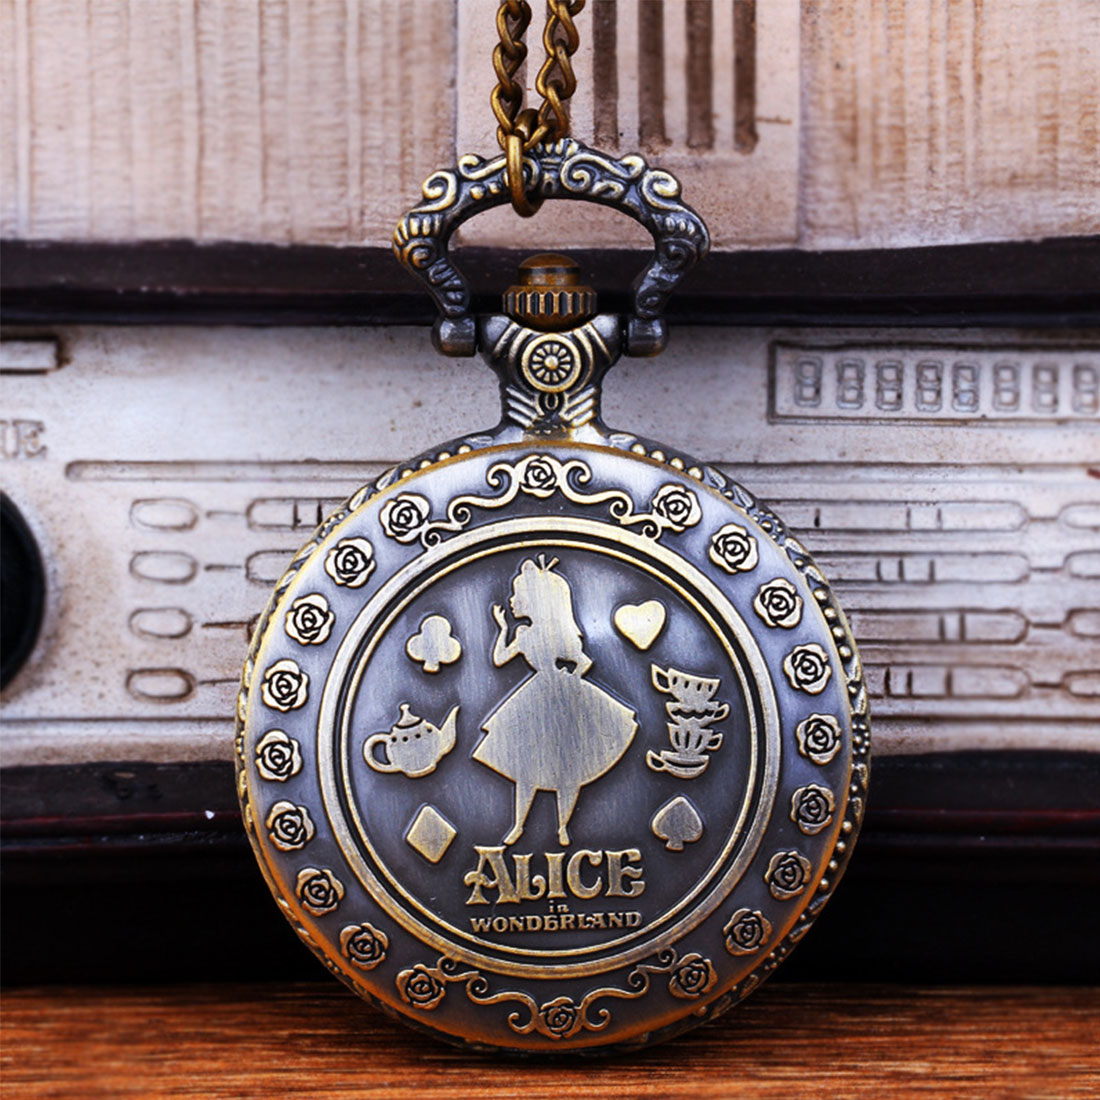 Retro Alice Fairy Tales Theme Bronze Quartz Pocket Watches Vintage Watches Christmas Birthday Gift